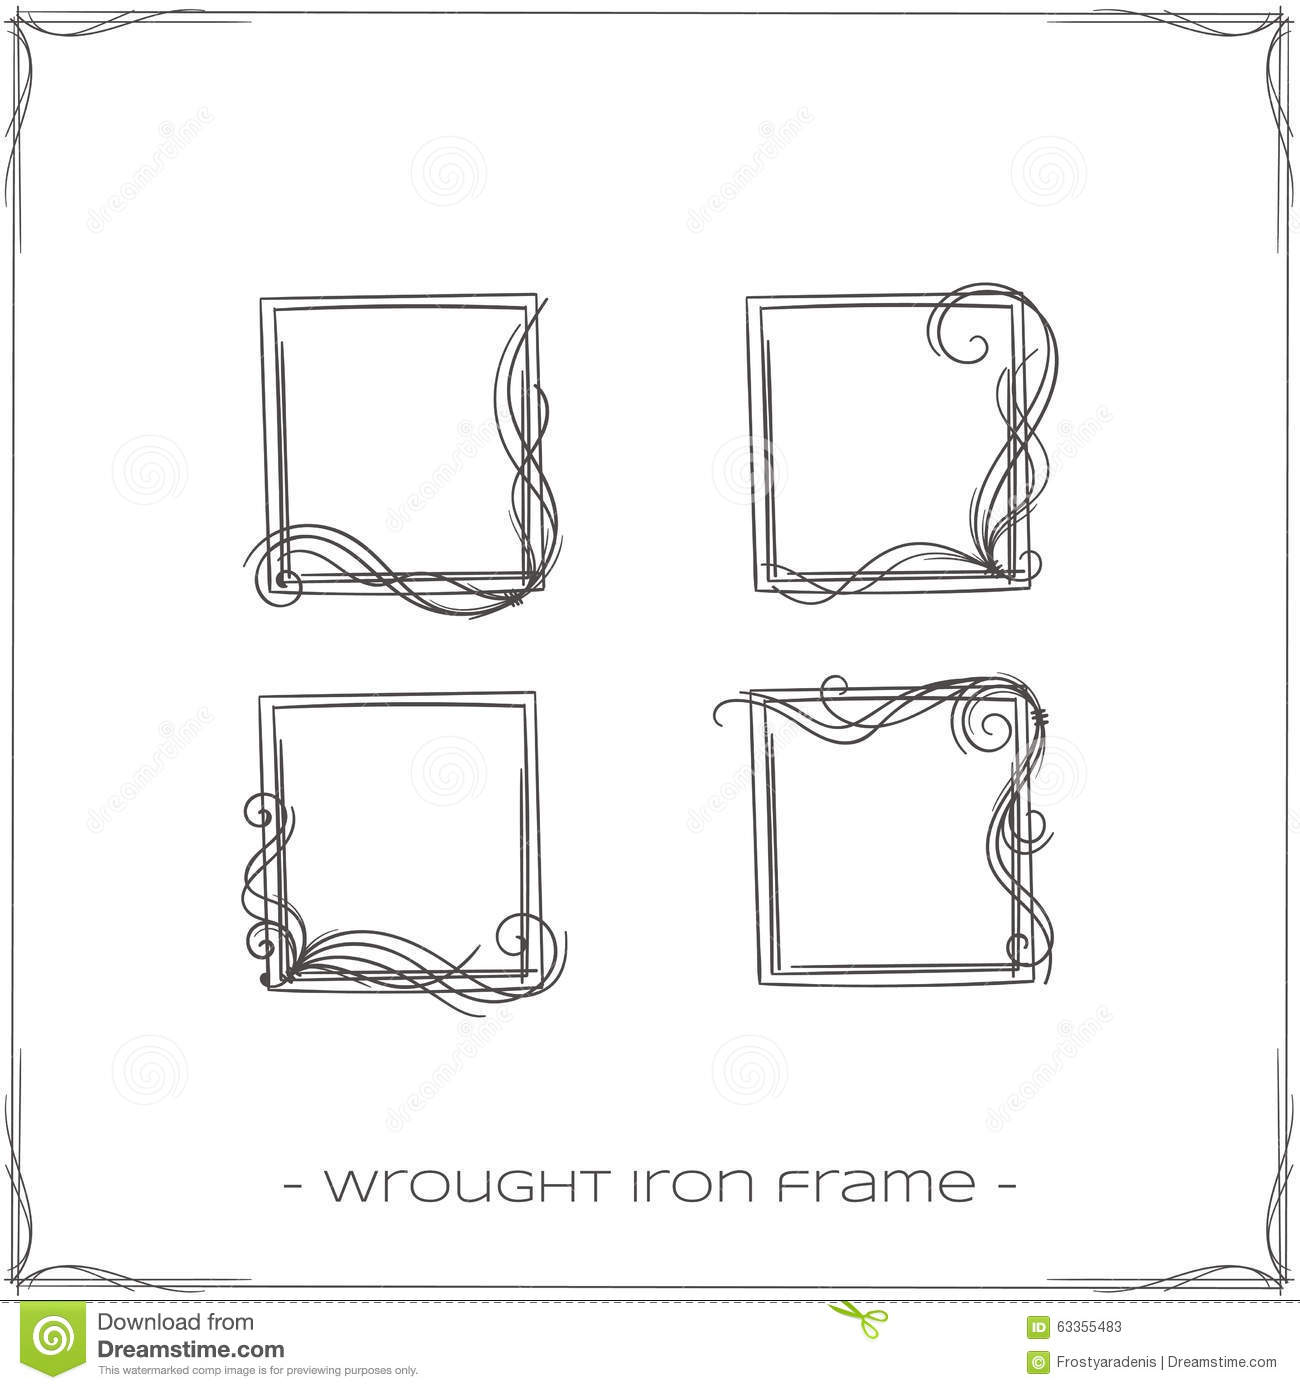 Wrought Iron Frame Five stock vector. Illustration of element - 63355483